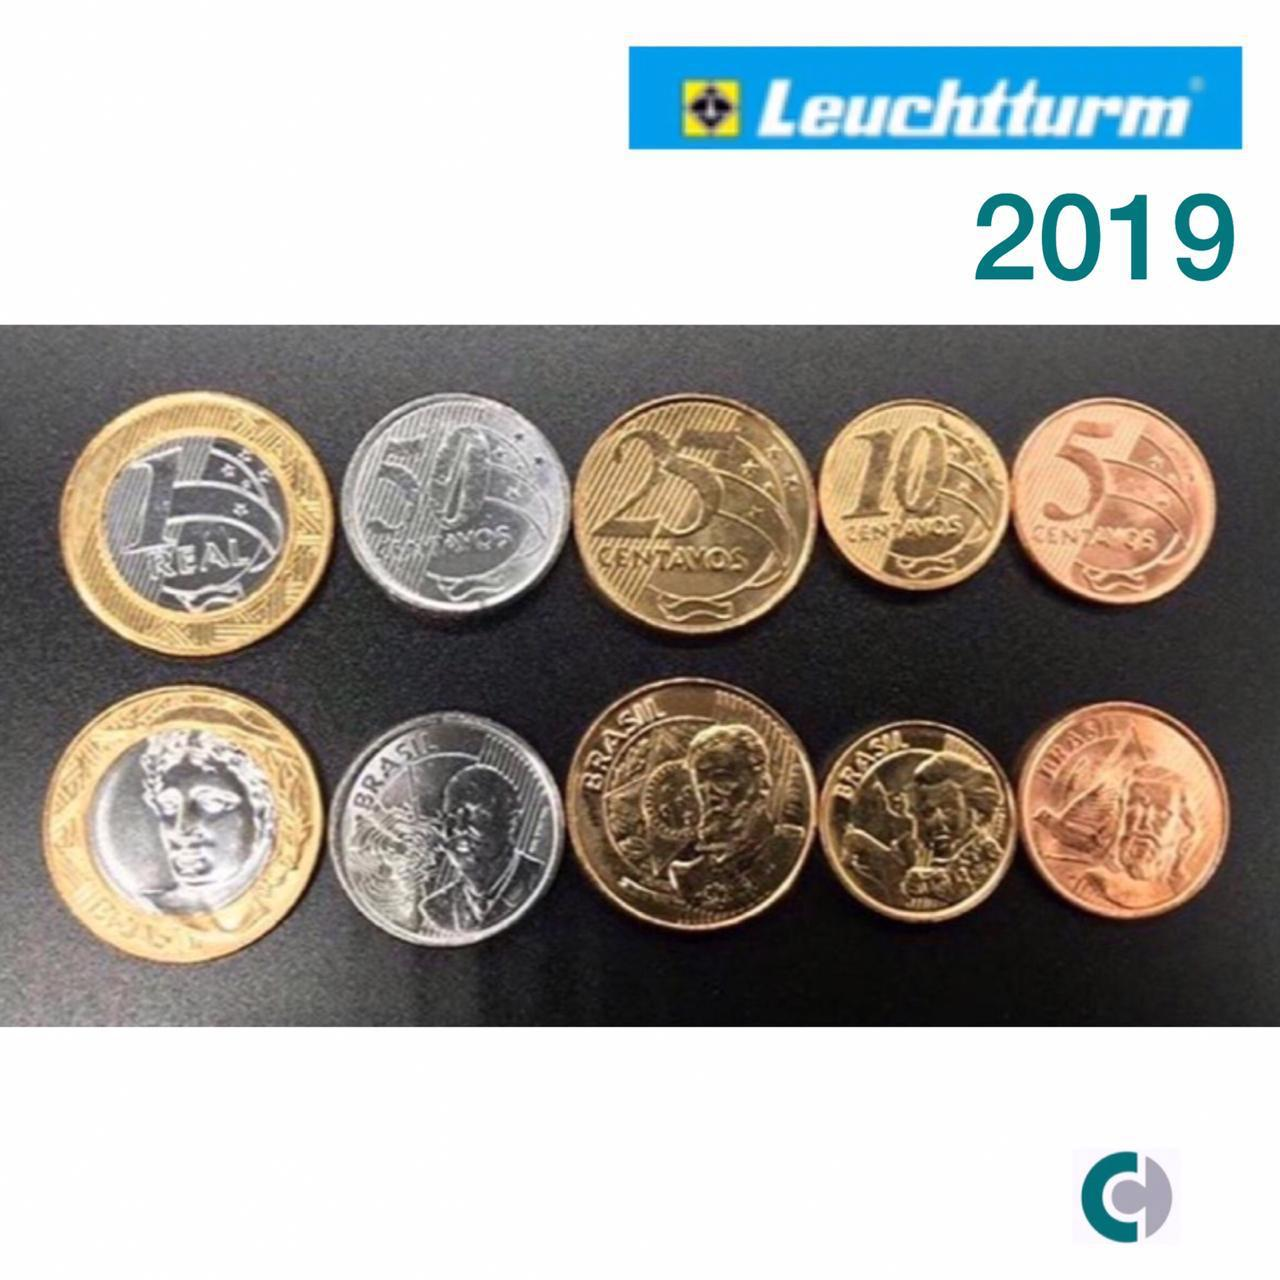 SET DE MOEDAS DO REAL 2019 FC - Em coin holders Leuchtturm